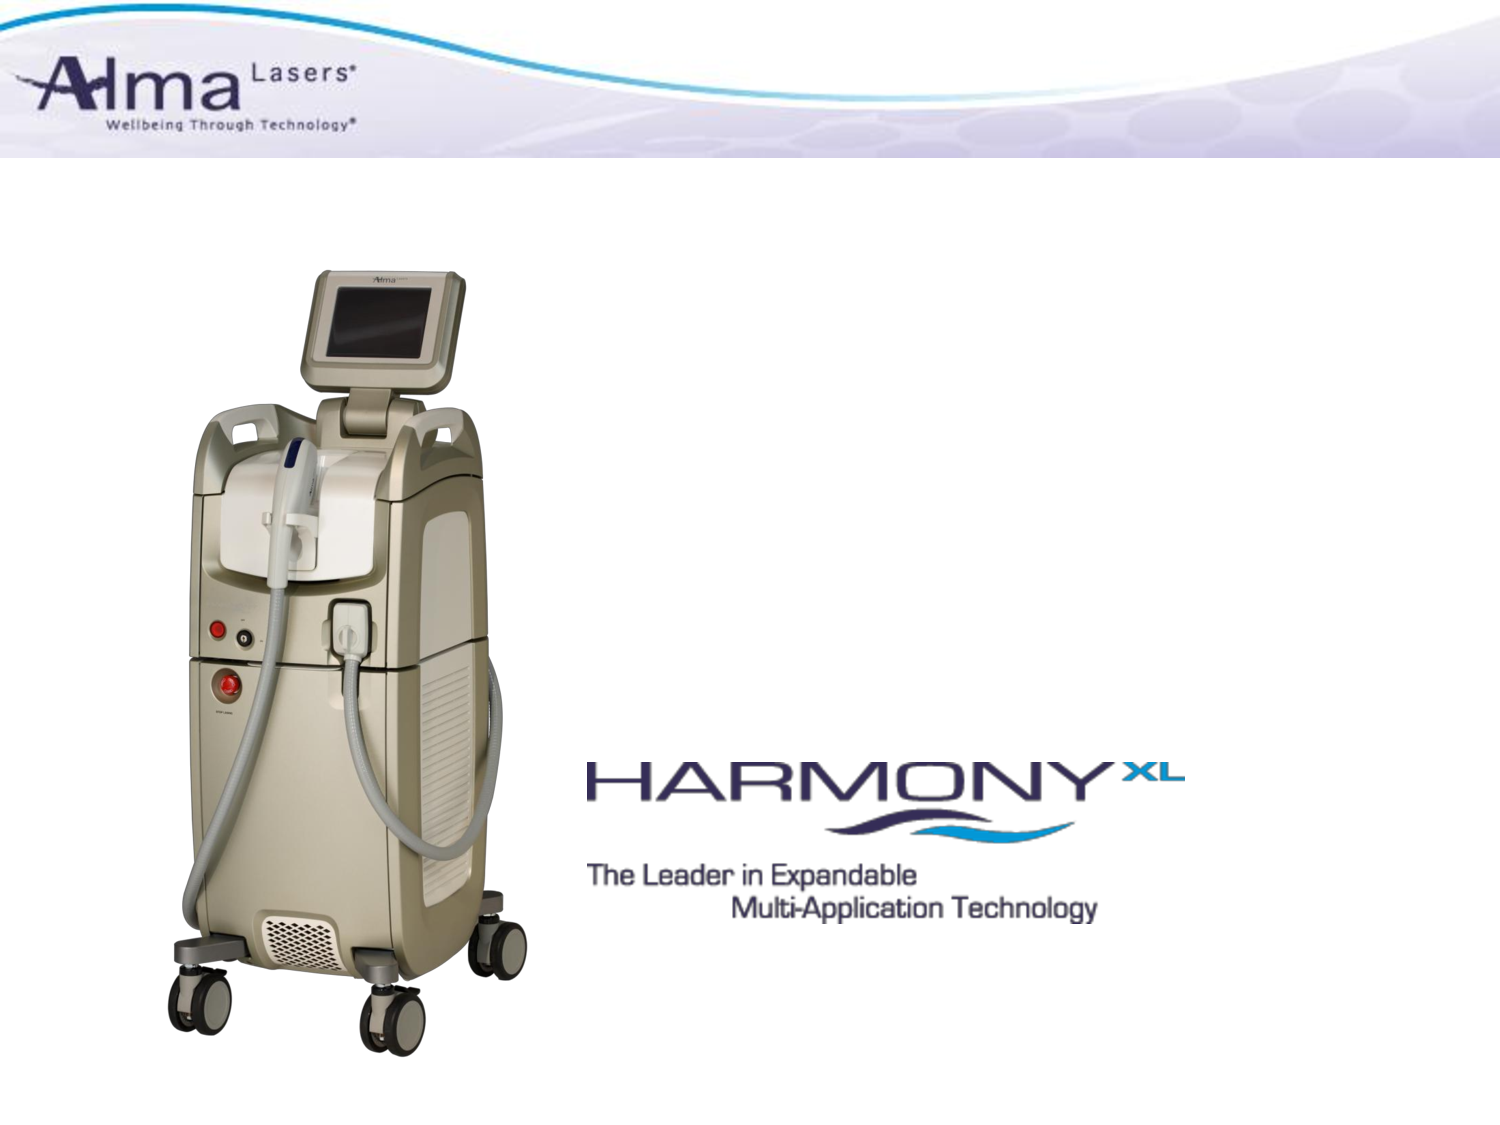 The Alma Harmony Laser system is used for a multitude of